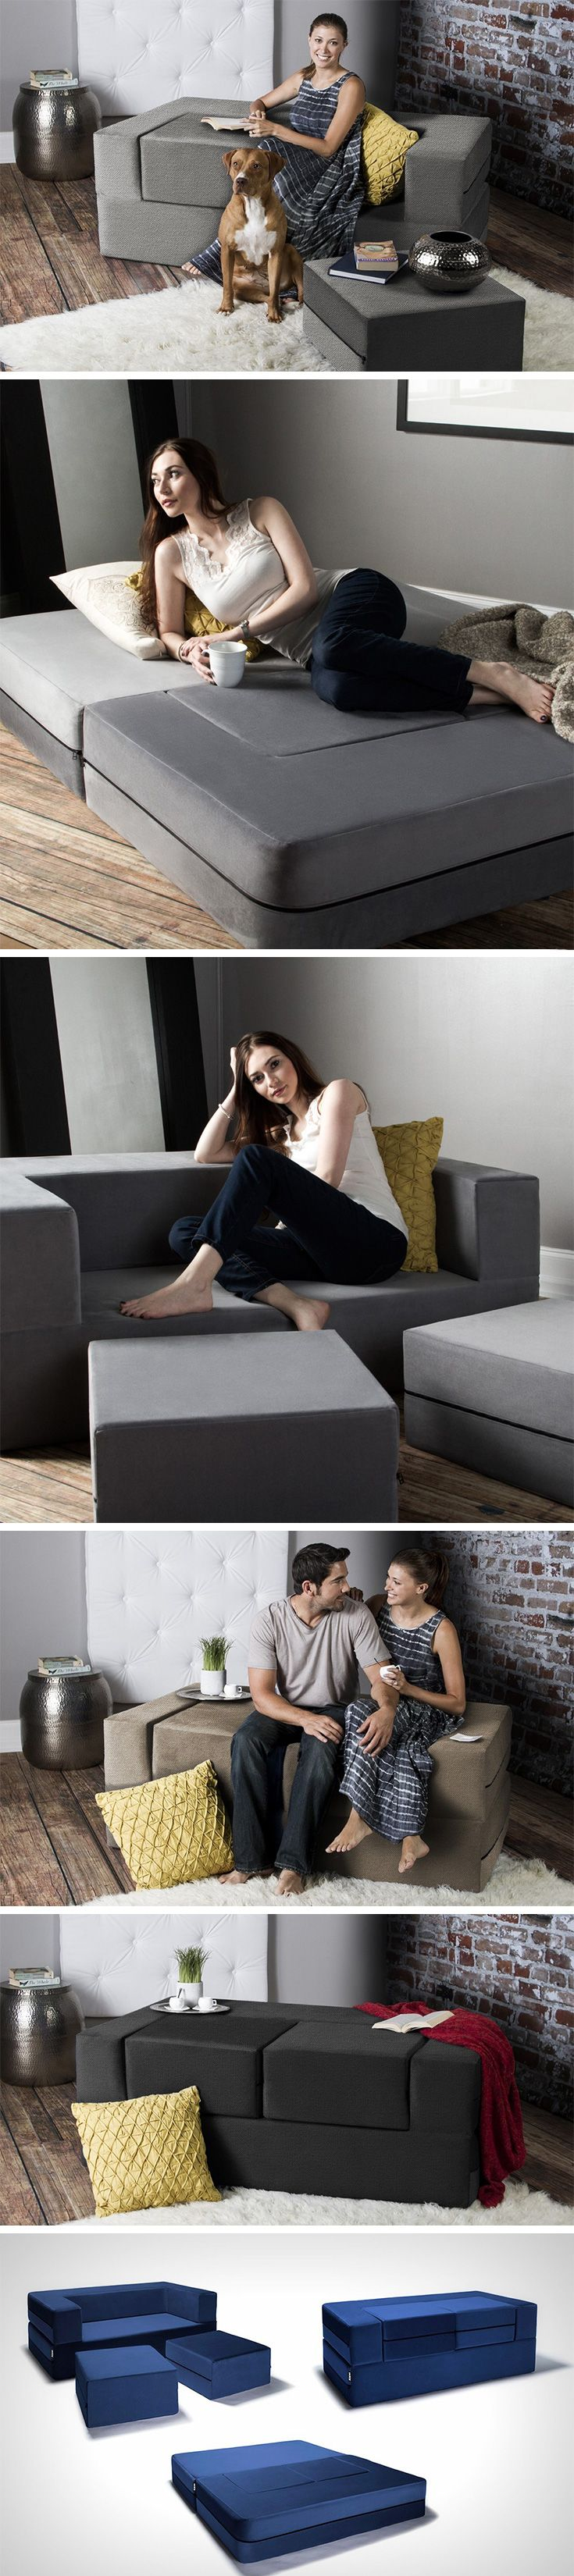 The Zipline Loveseat's design makes it fit into any household. It comes in four separate parts that when put together, can be turned into either a bed, or a sofa, or even a divan. Separate elements can be used individually too!